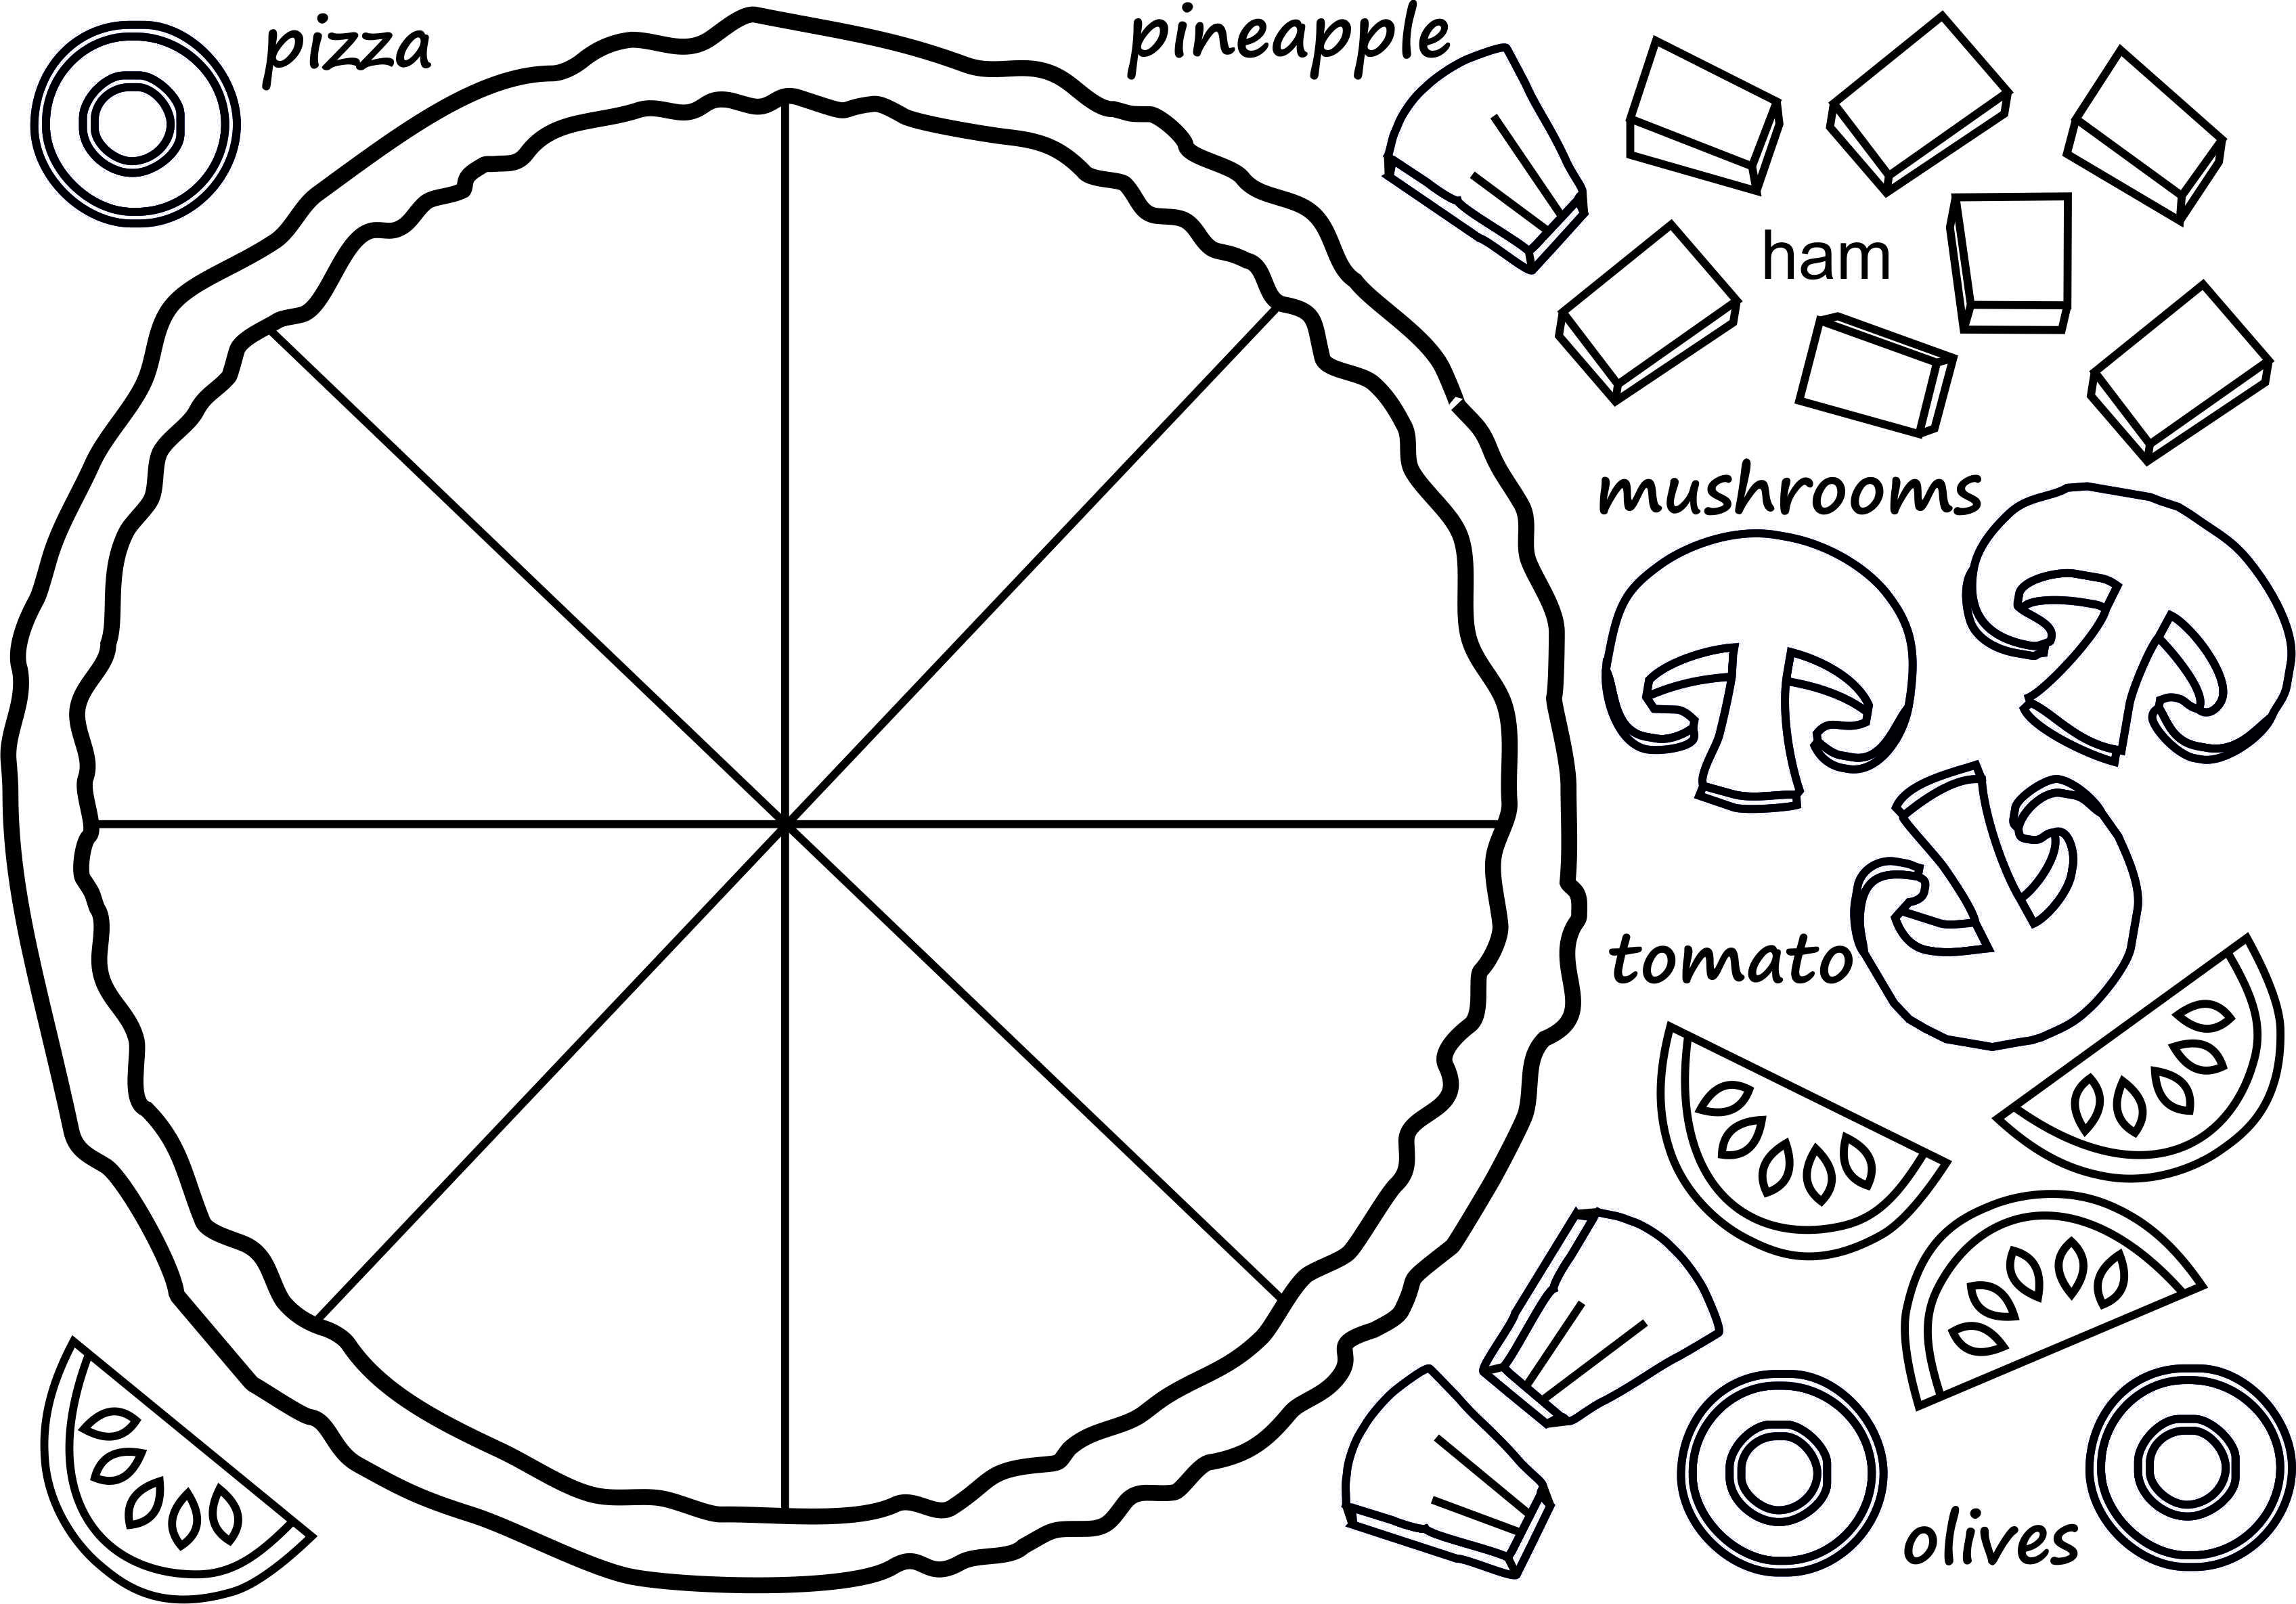 Make Your Own Pizza Make Your Own Pizza Pizza Coloring Page